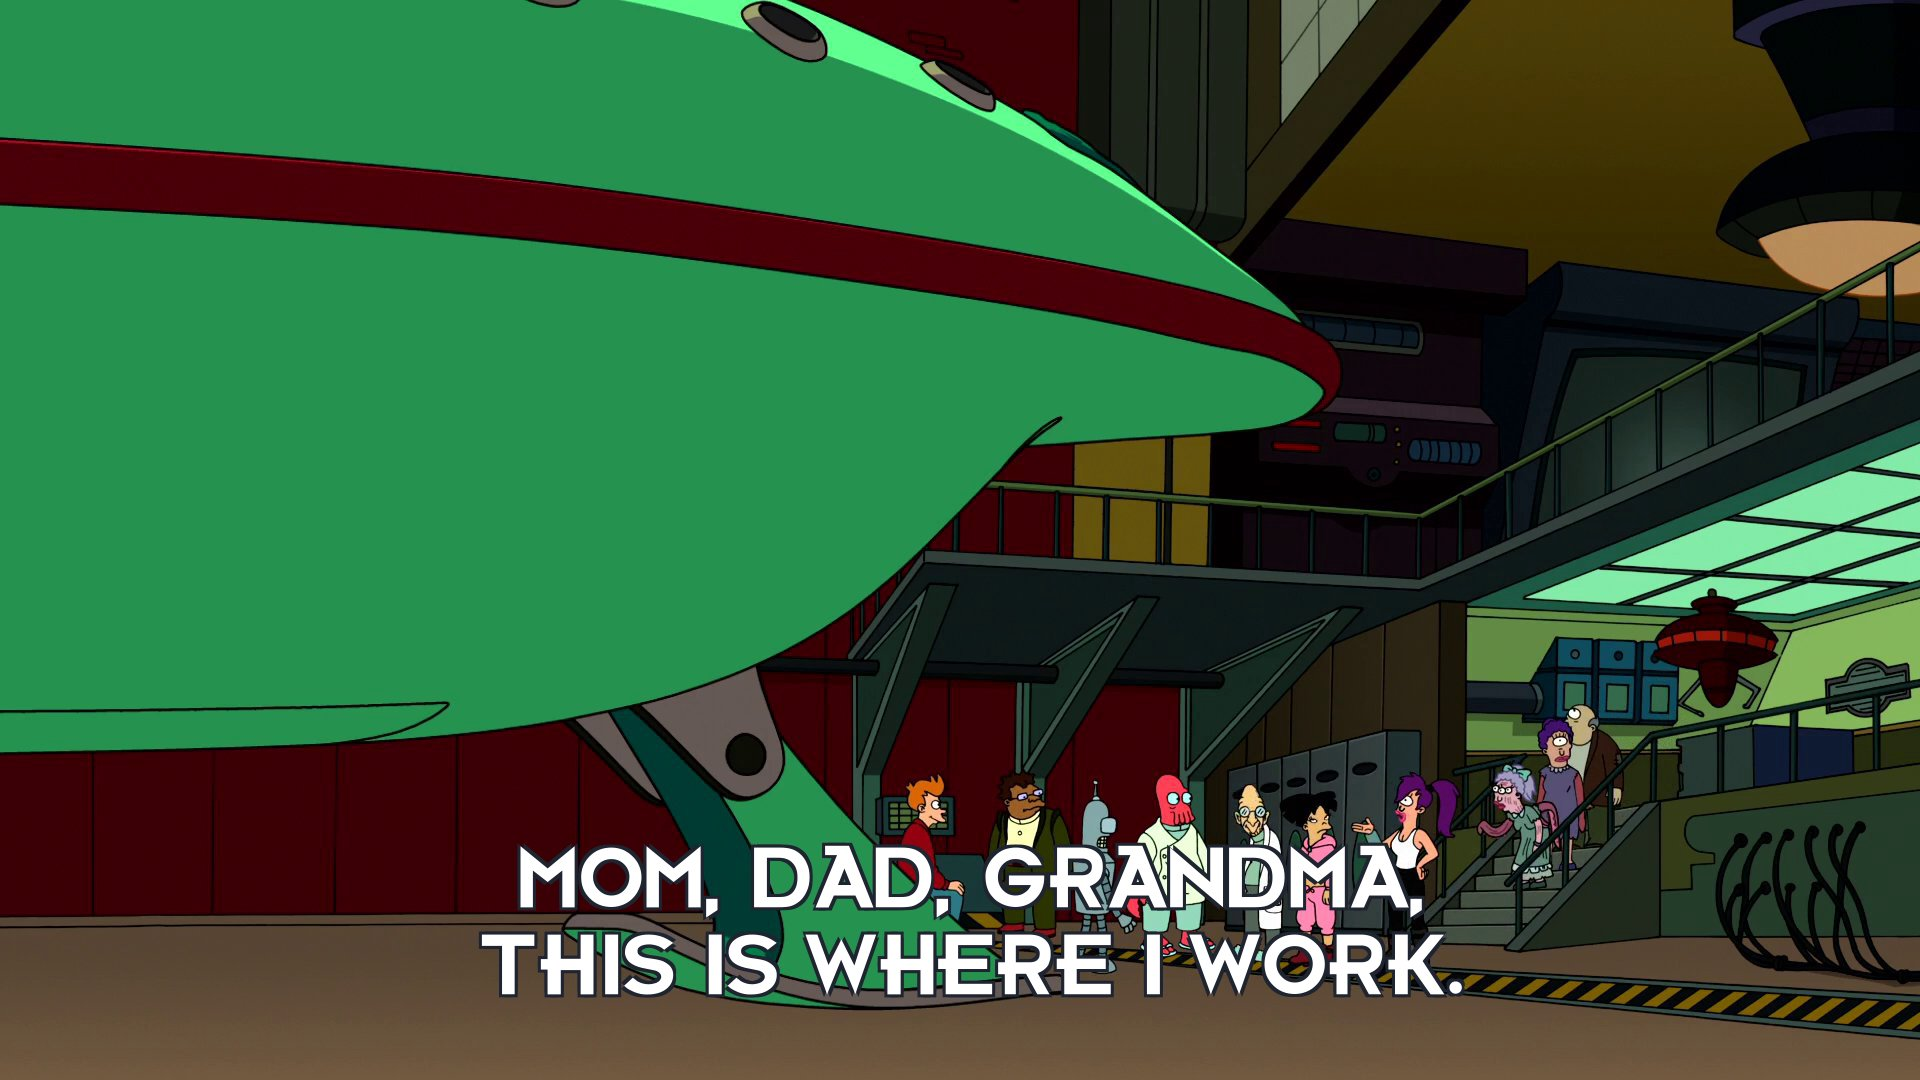 Turanga Leela: Mom, Dad, Grandma, this is where I work.